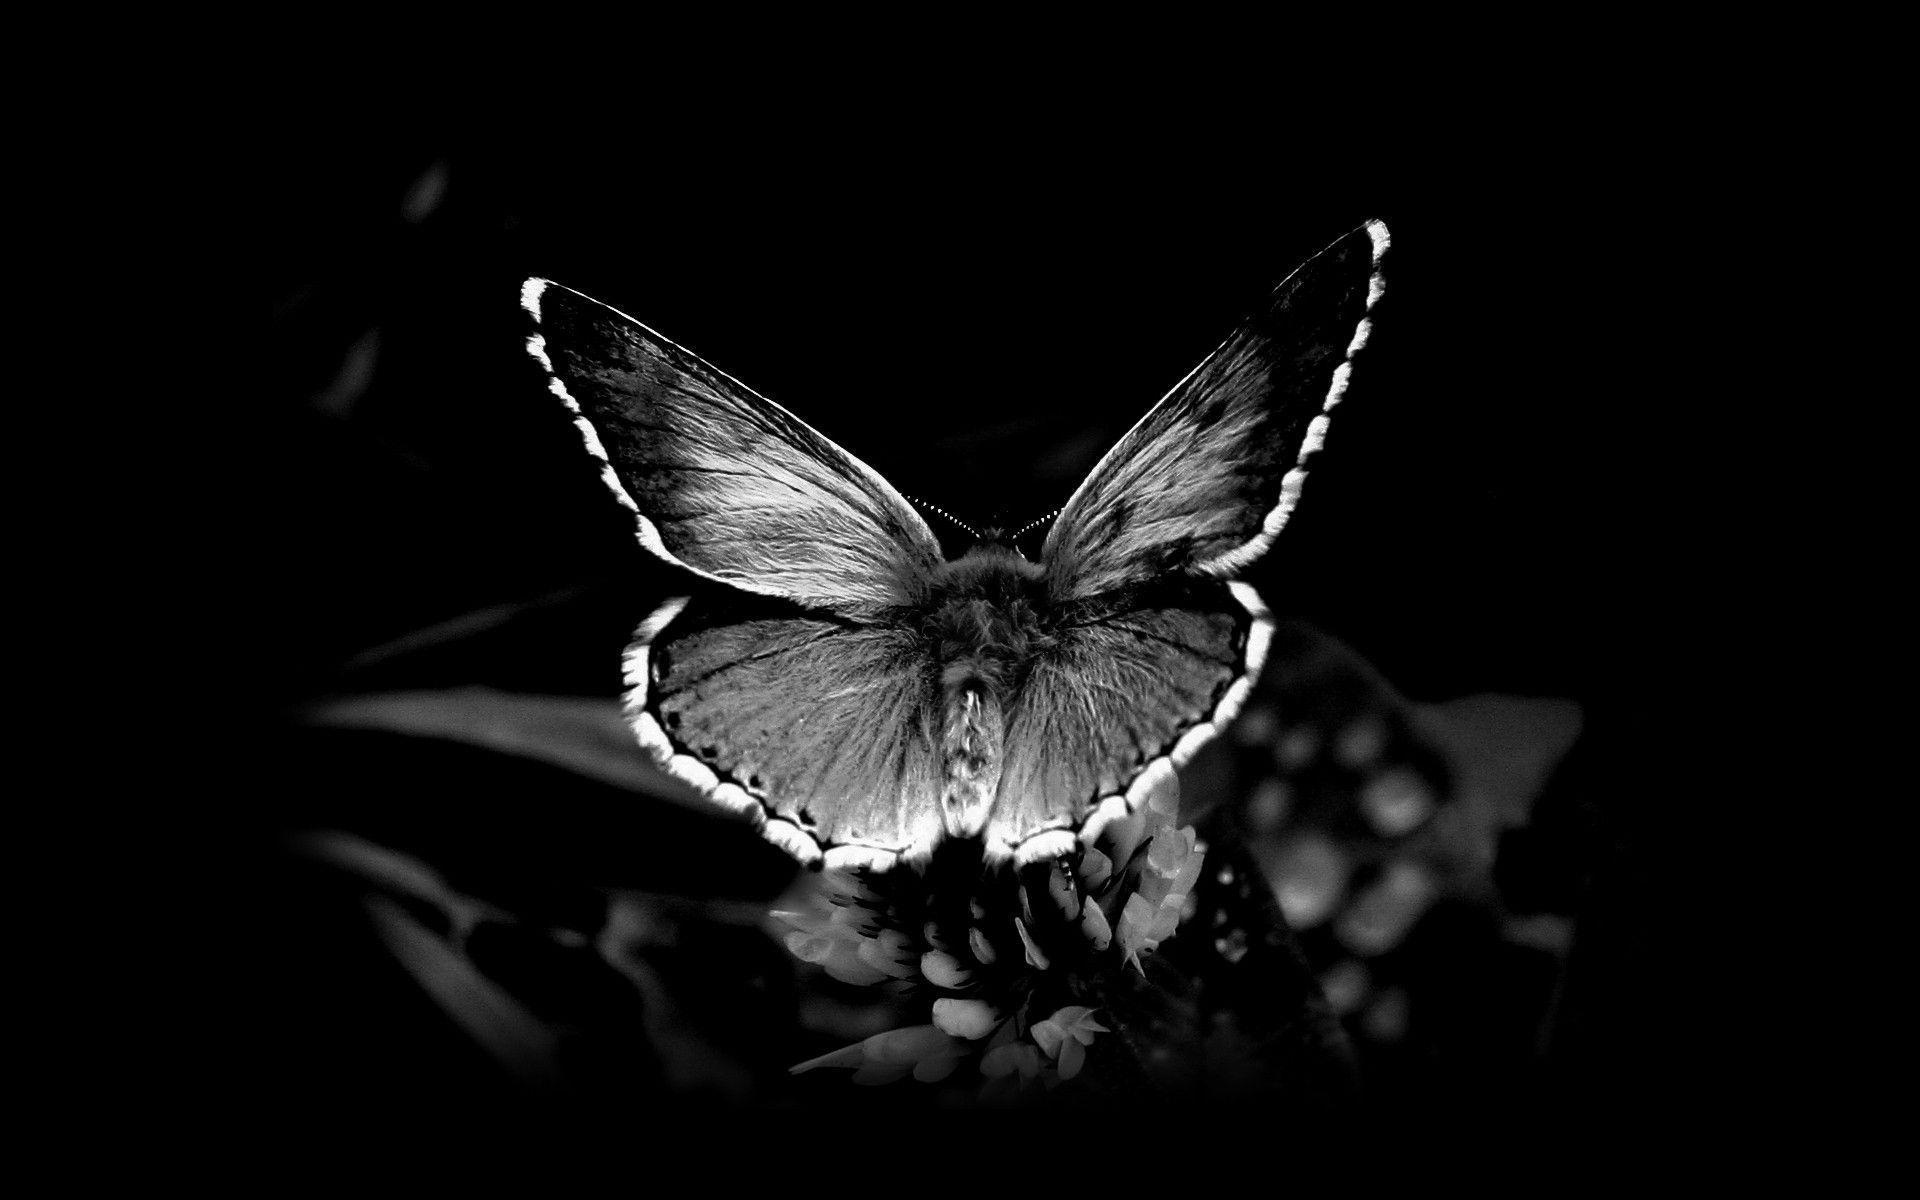 Black And White Nature Wallpapers - Wallpaper Cave